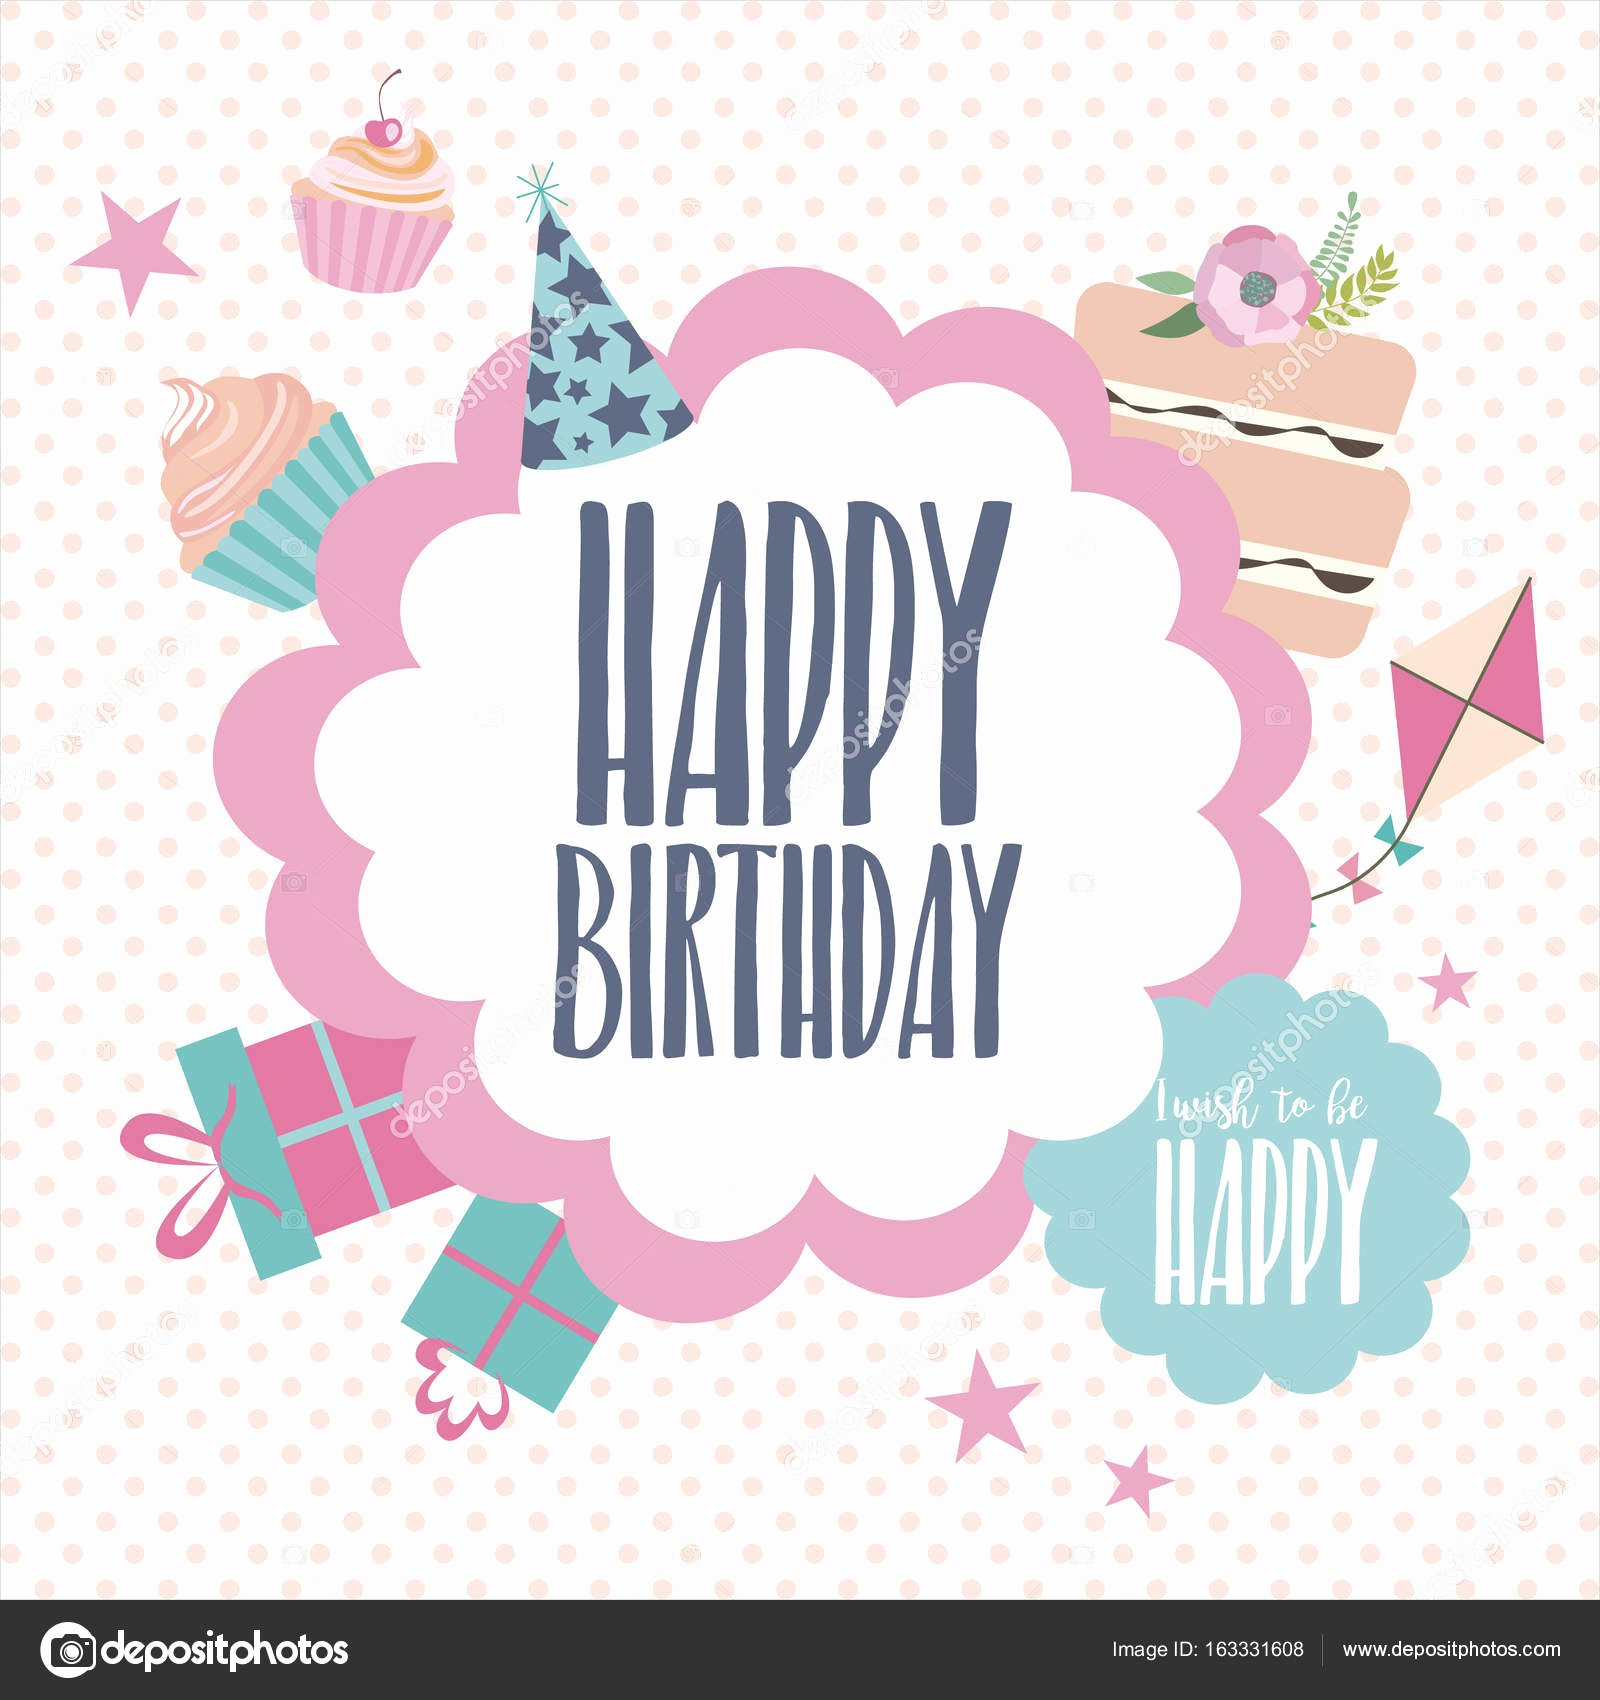 Happy Birthday Card Template Awesome Cute Happy Birthday Card Template — Stock Vector © Vissay